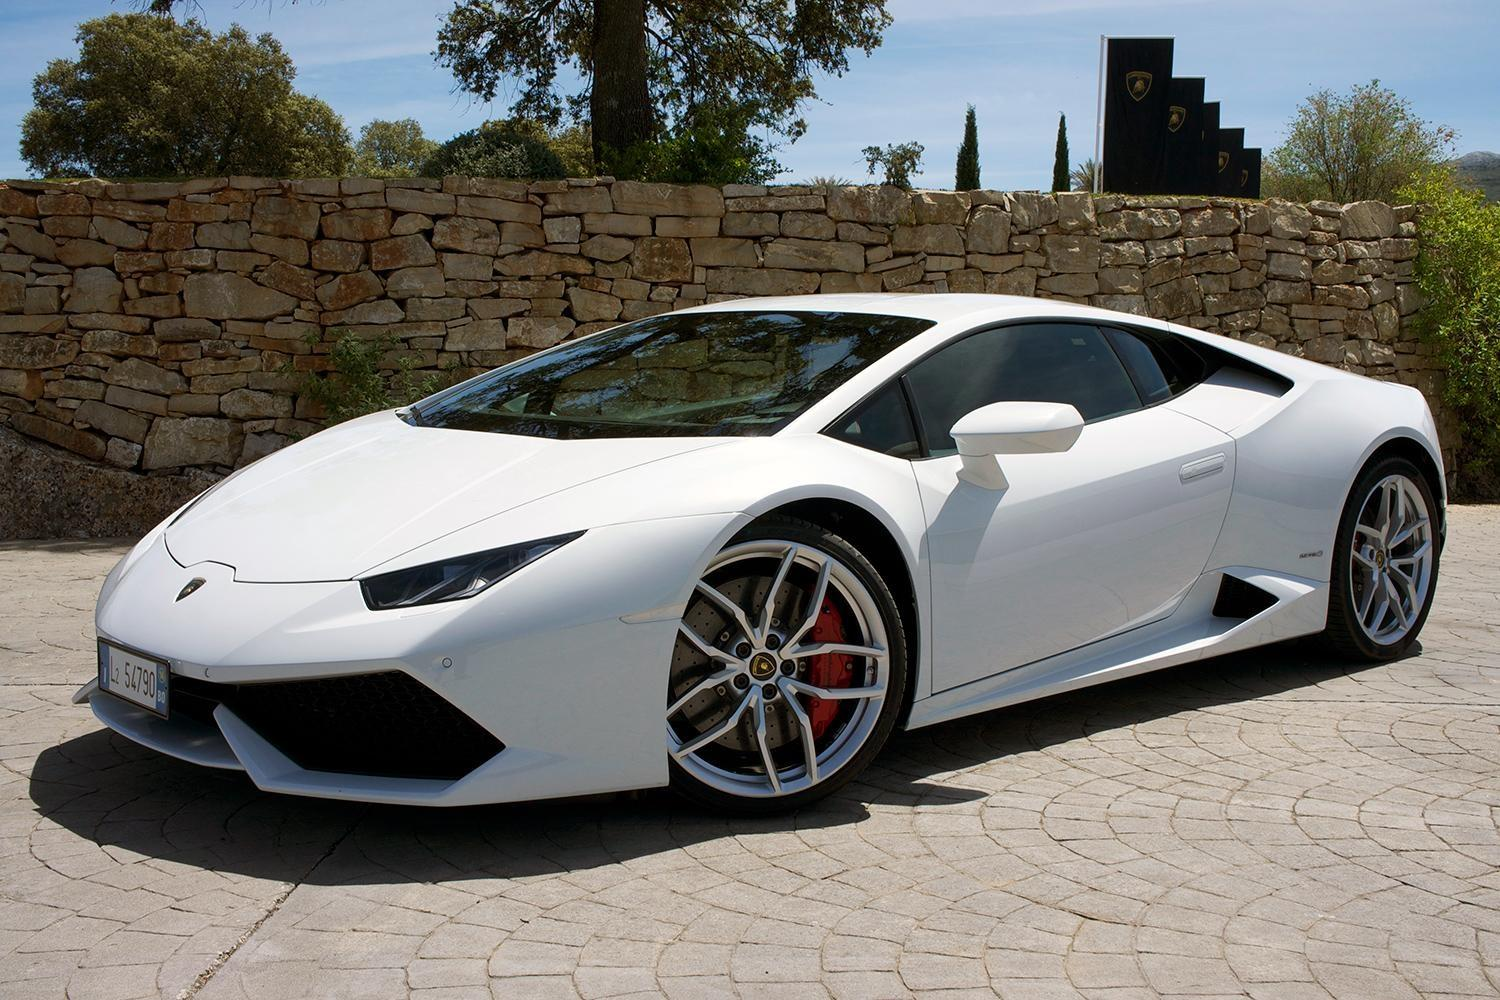 Lamborghini Huracan Pictures Free Download Hd For Desktop